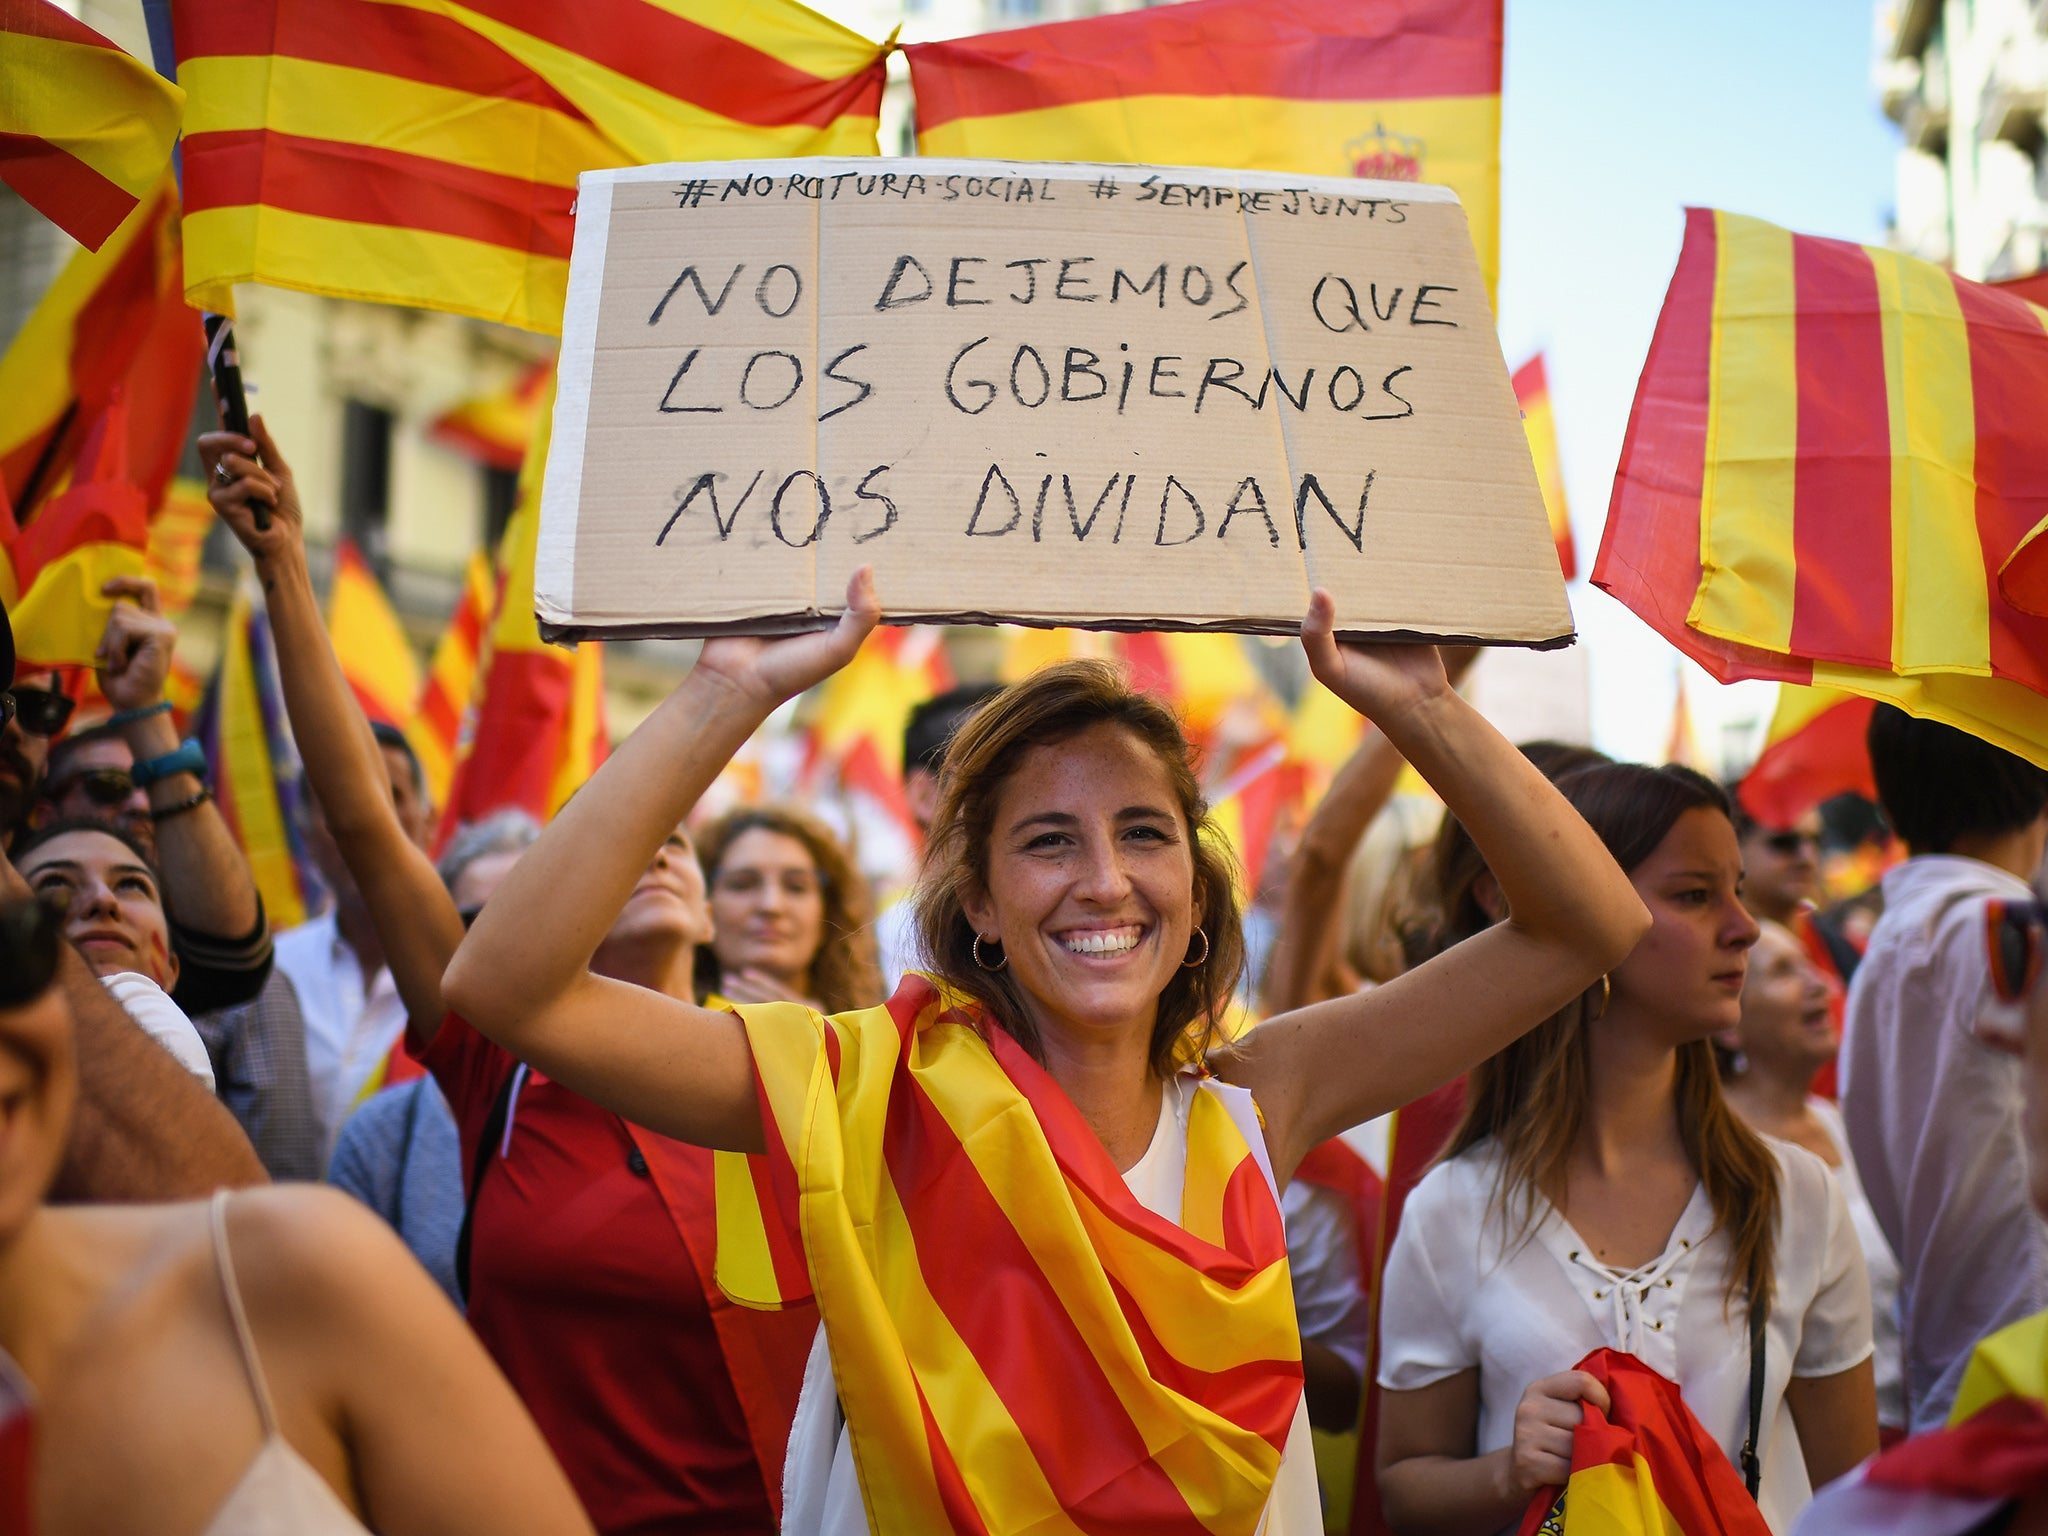 Catalan Referendum Thousands March For Spanish Unity Ahead Of Expected Declaration Of Independence